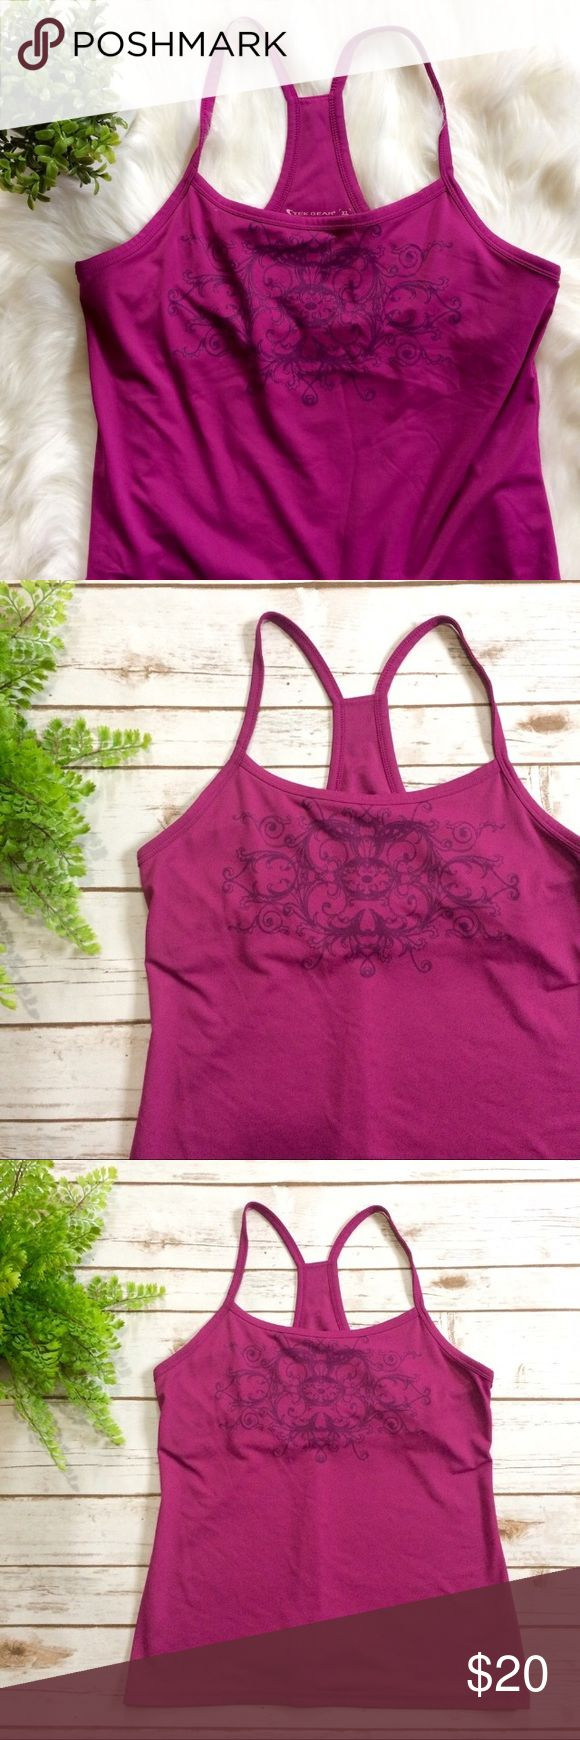 Yoga Spaghetti Strap Tank Top This gorgeous purple/magenta color top will pair perfectly with solid color workout clothes for a fun pop of color! Perfect for the gym or lounging. Features a racer back style straps and a fully lined shelf bra. 90% polyester, 10% spandex tek gear Tops Tank Tops